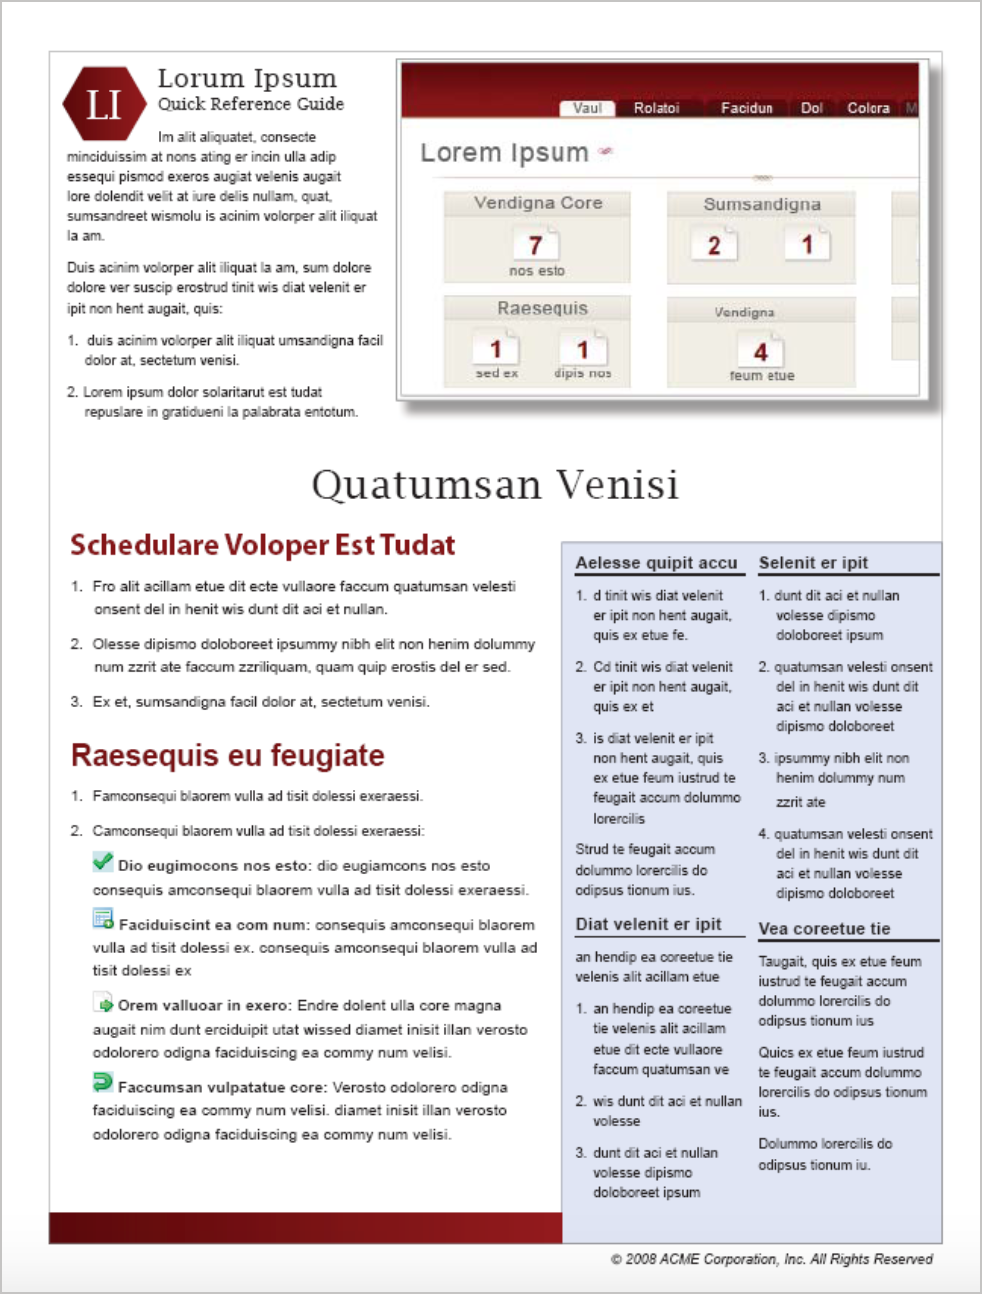 Quick reference guide format focusing on tasks